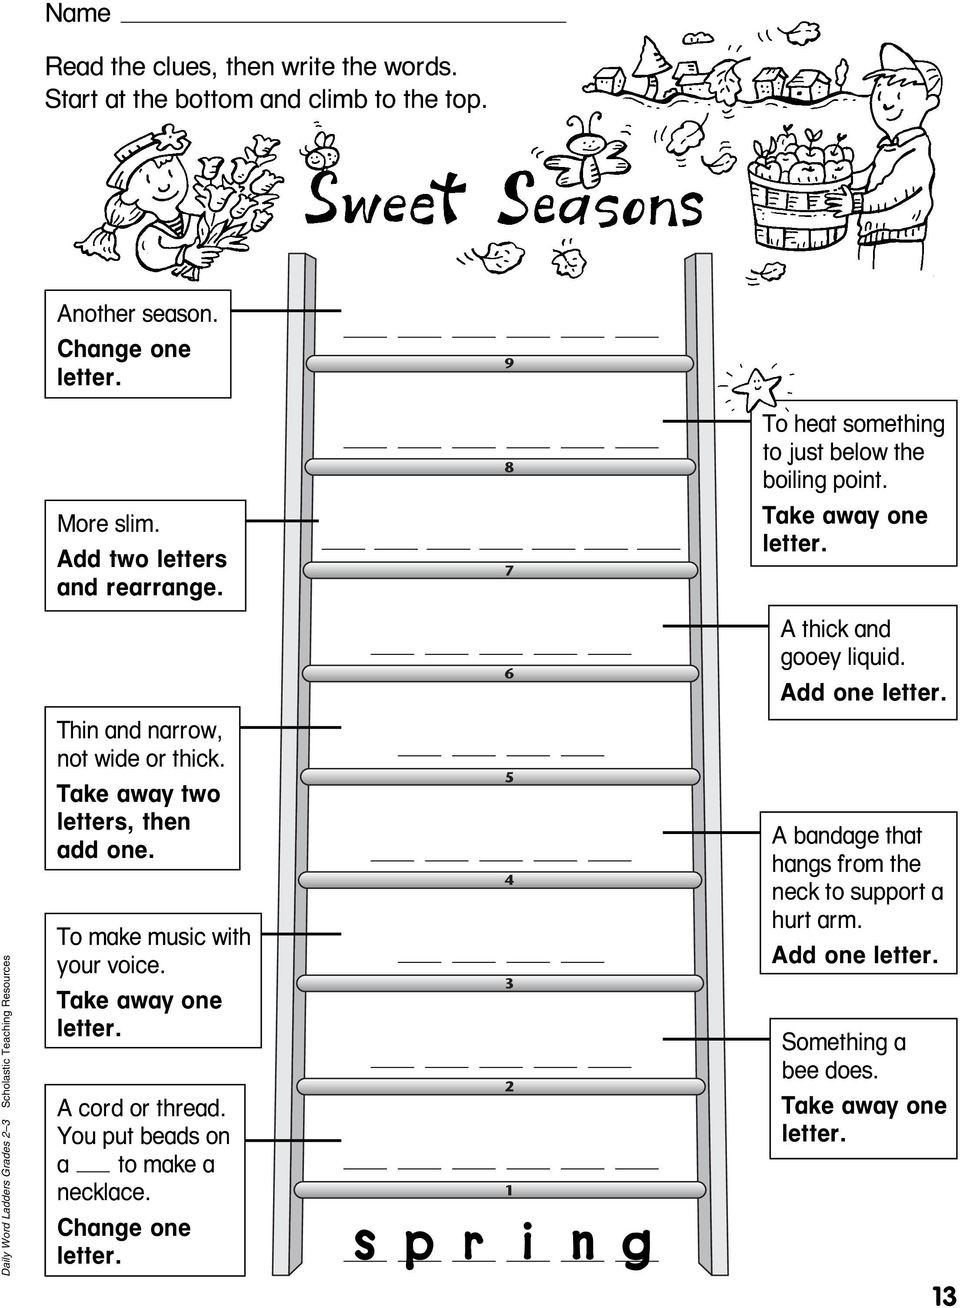 Word Ladders Middle School Wel E to Word Ladders Pdf Free Download